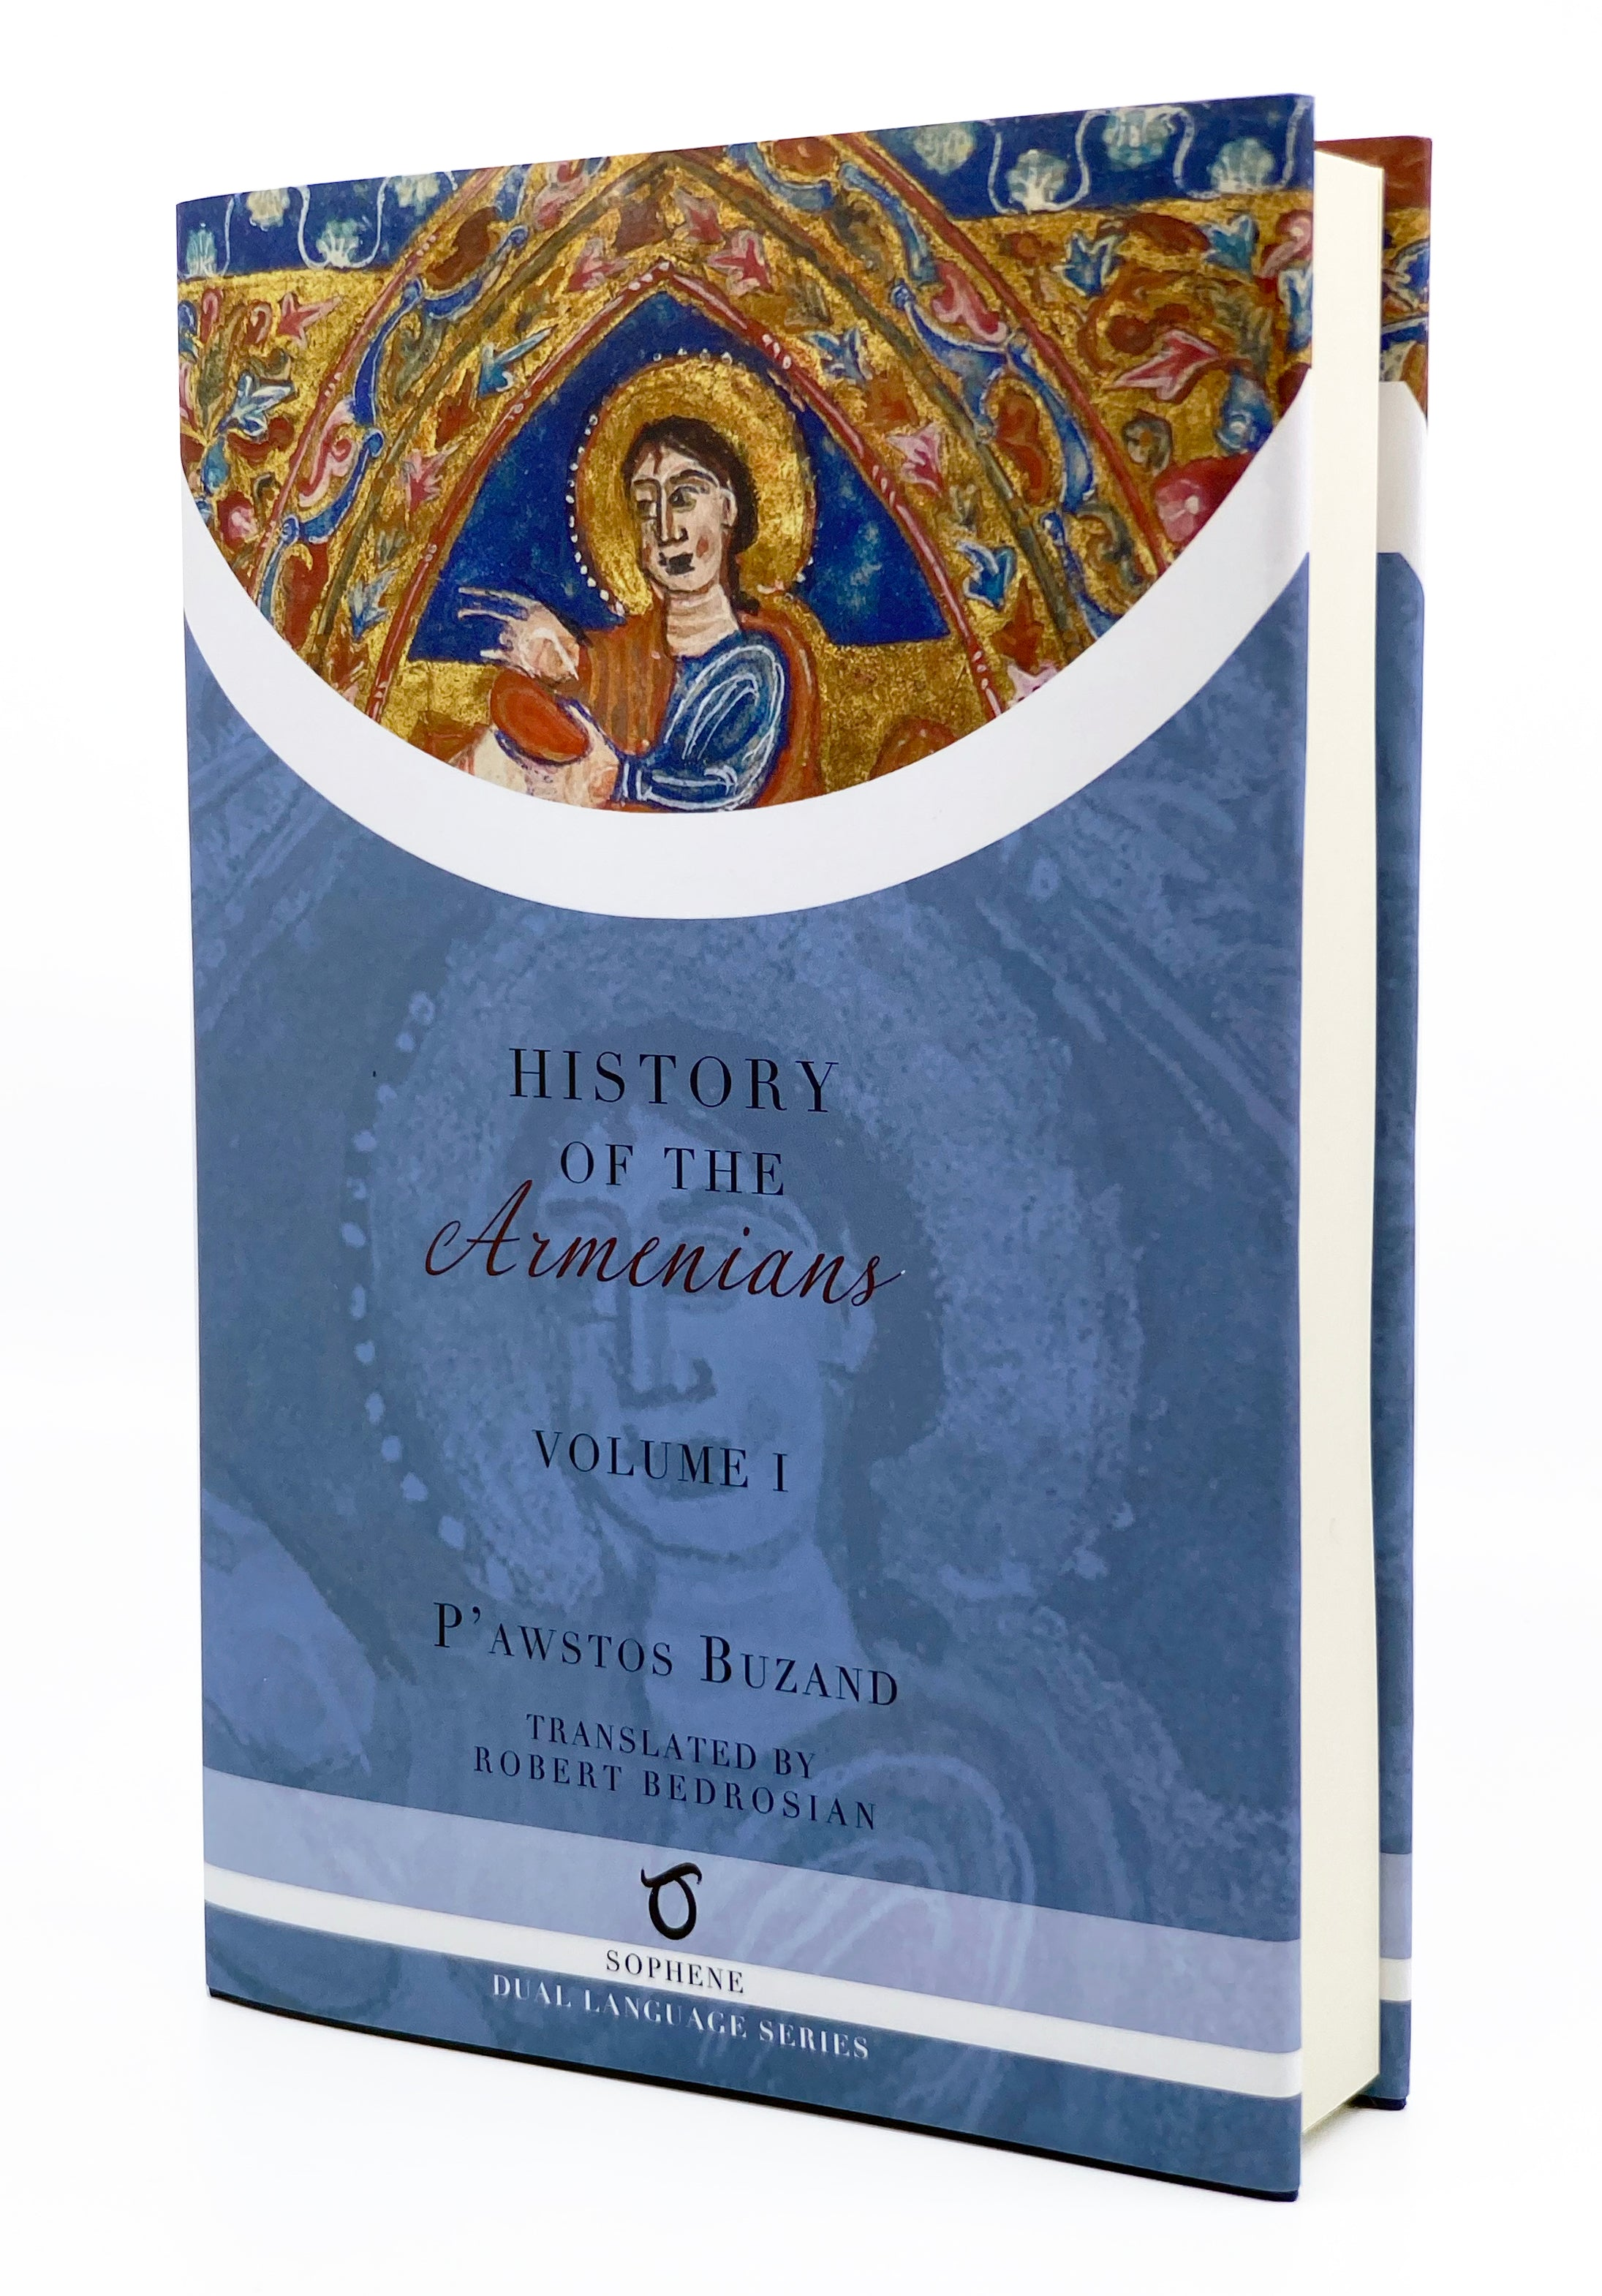 P'awstos Buzand's History of the Armenians (Volume 1)